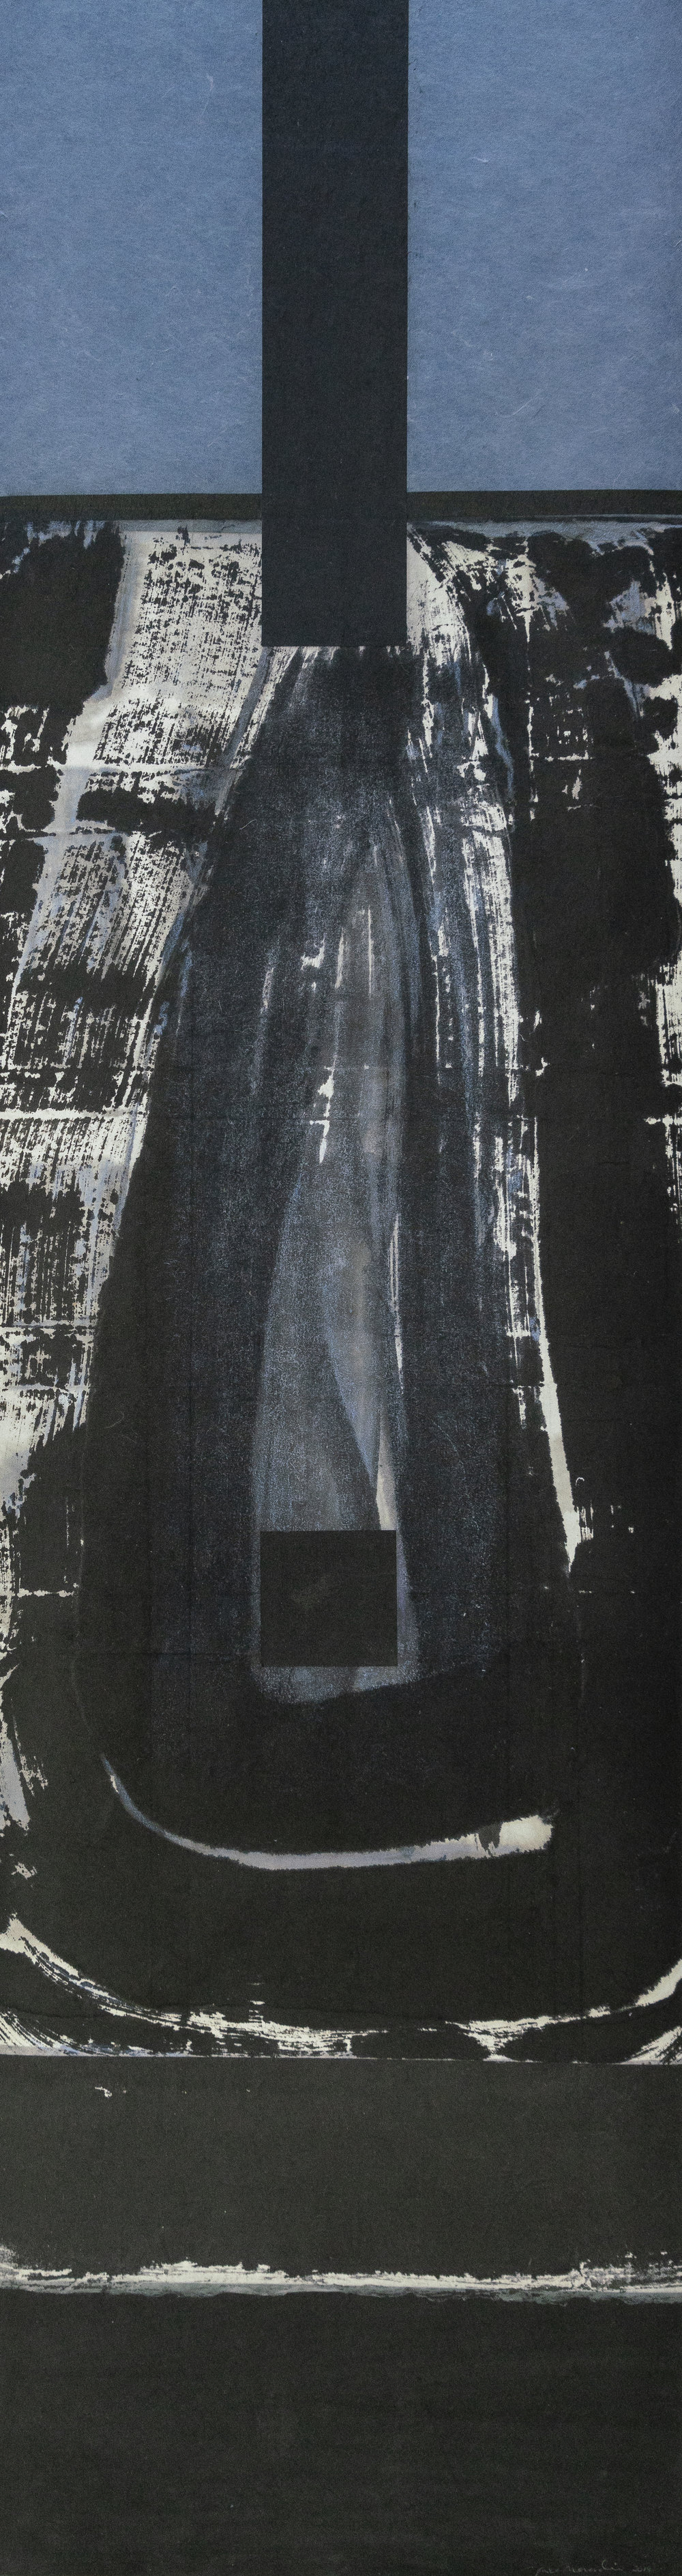 """#18-07 pastel, ink on paper, 44""""x12"""" 2018"""